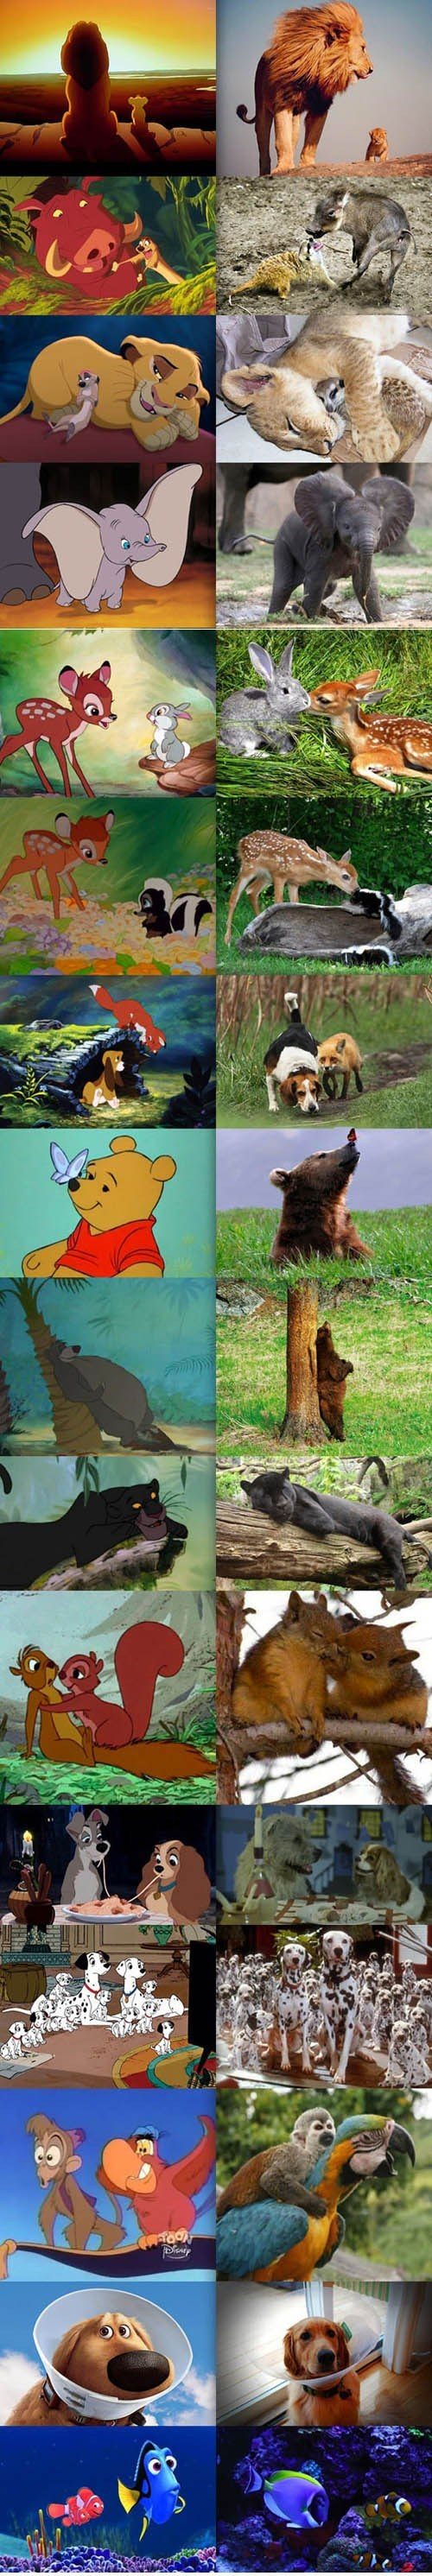 disney real life animation Movie animals - 6717602304